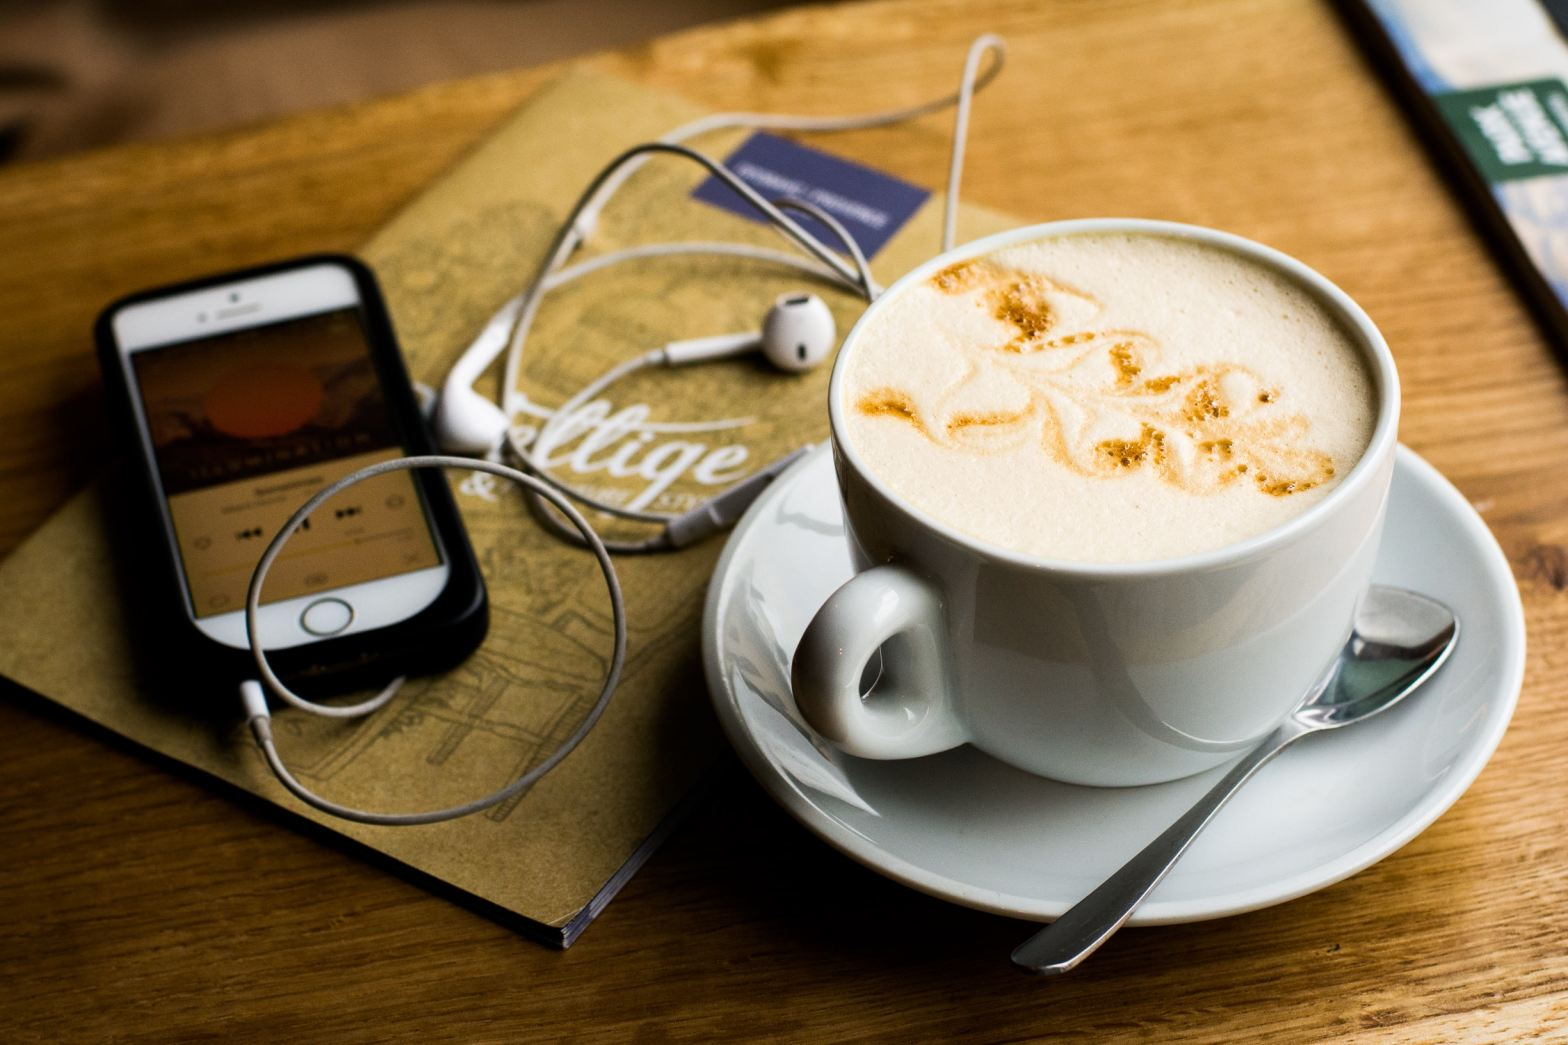 headphones smartphone and latte with a spoon on a cafe table